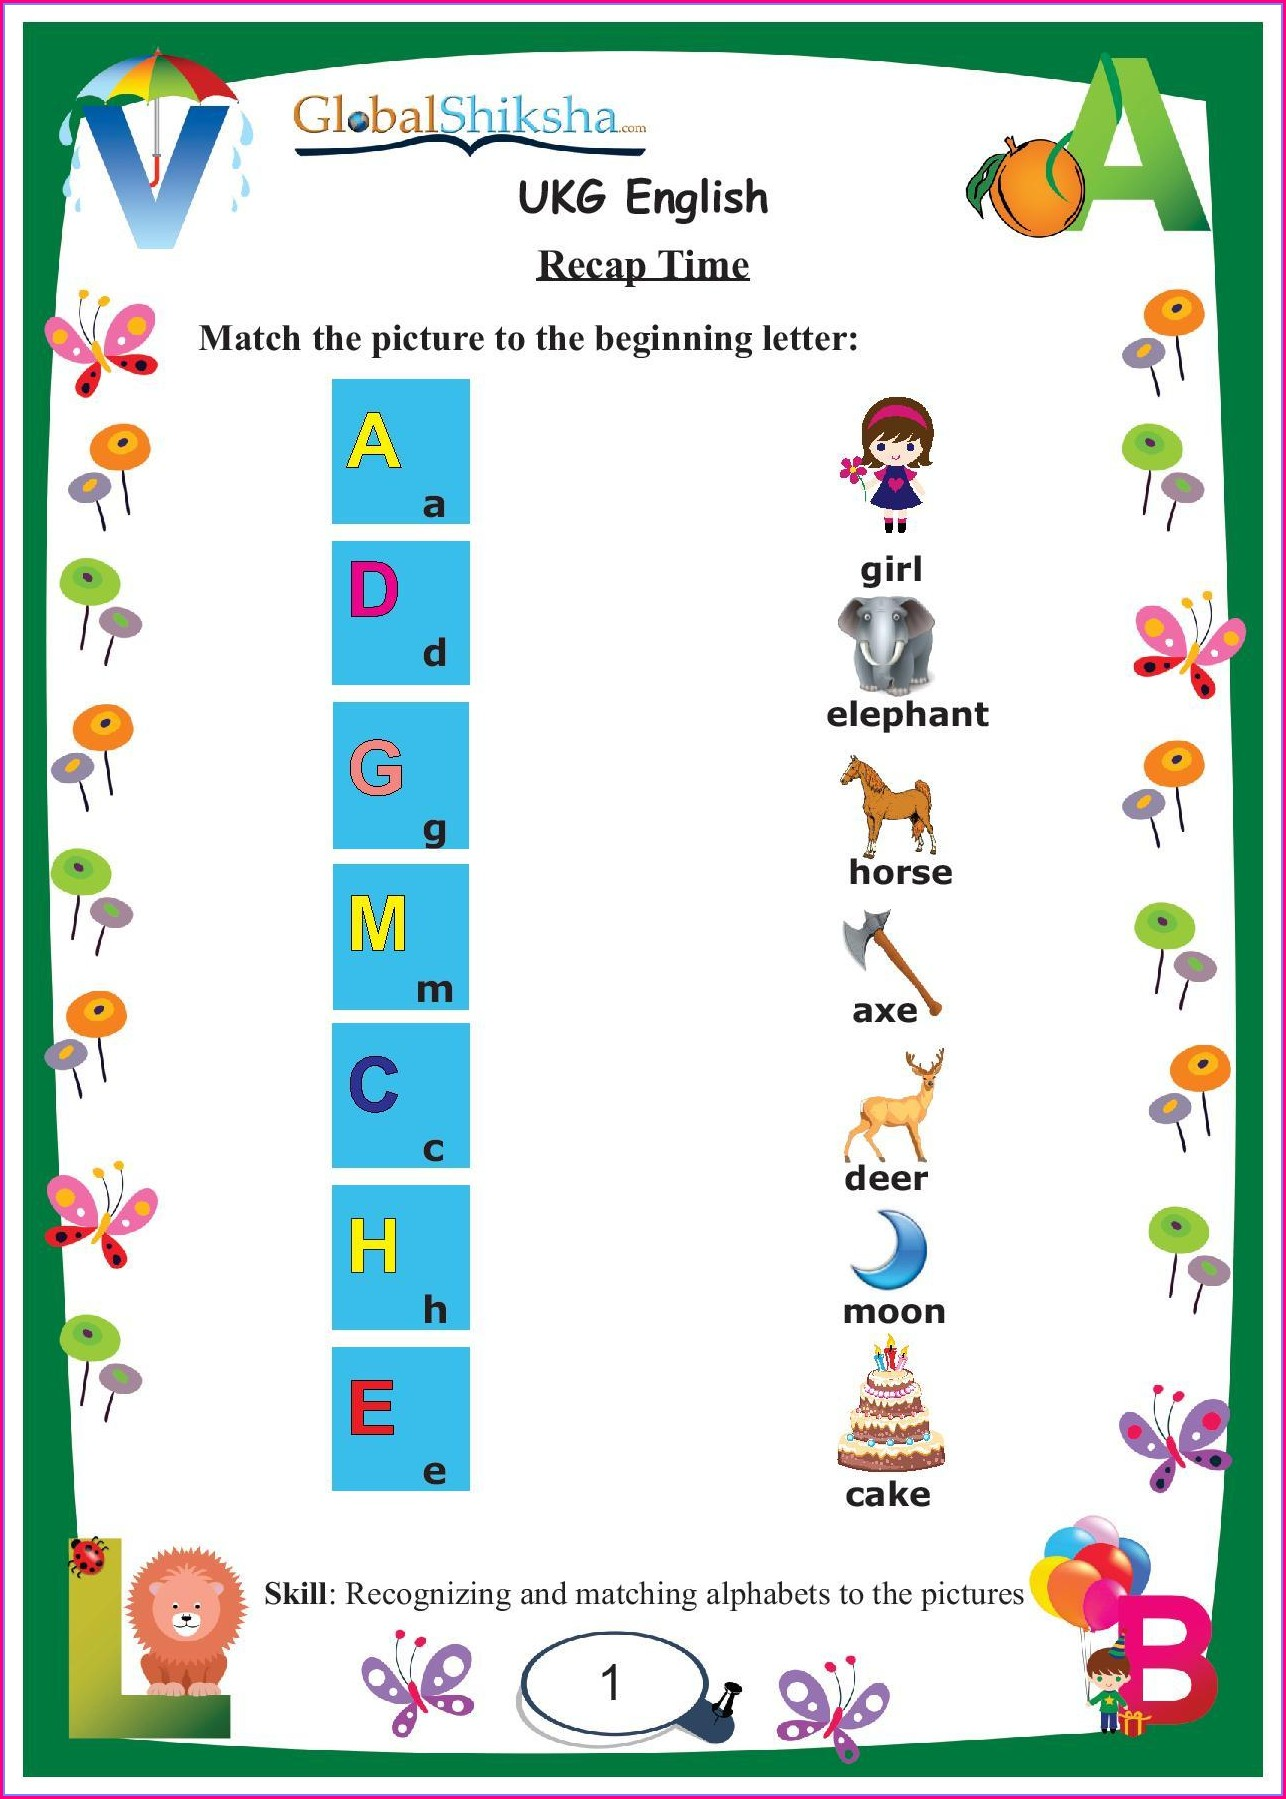 Grade 4 English Worksheet For Ukg Cbse Pattern